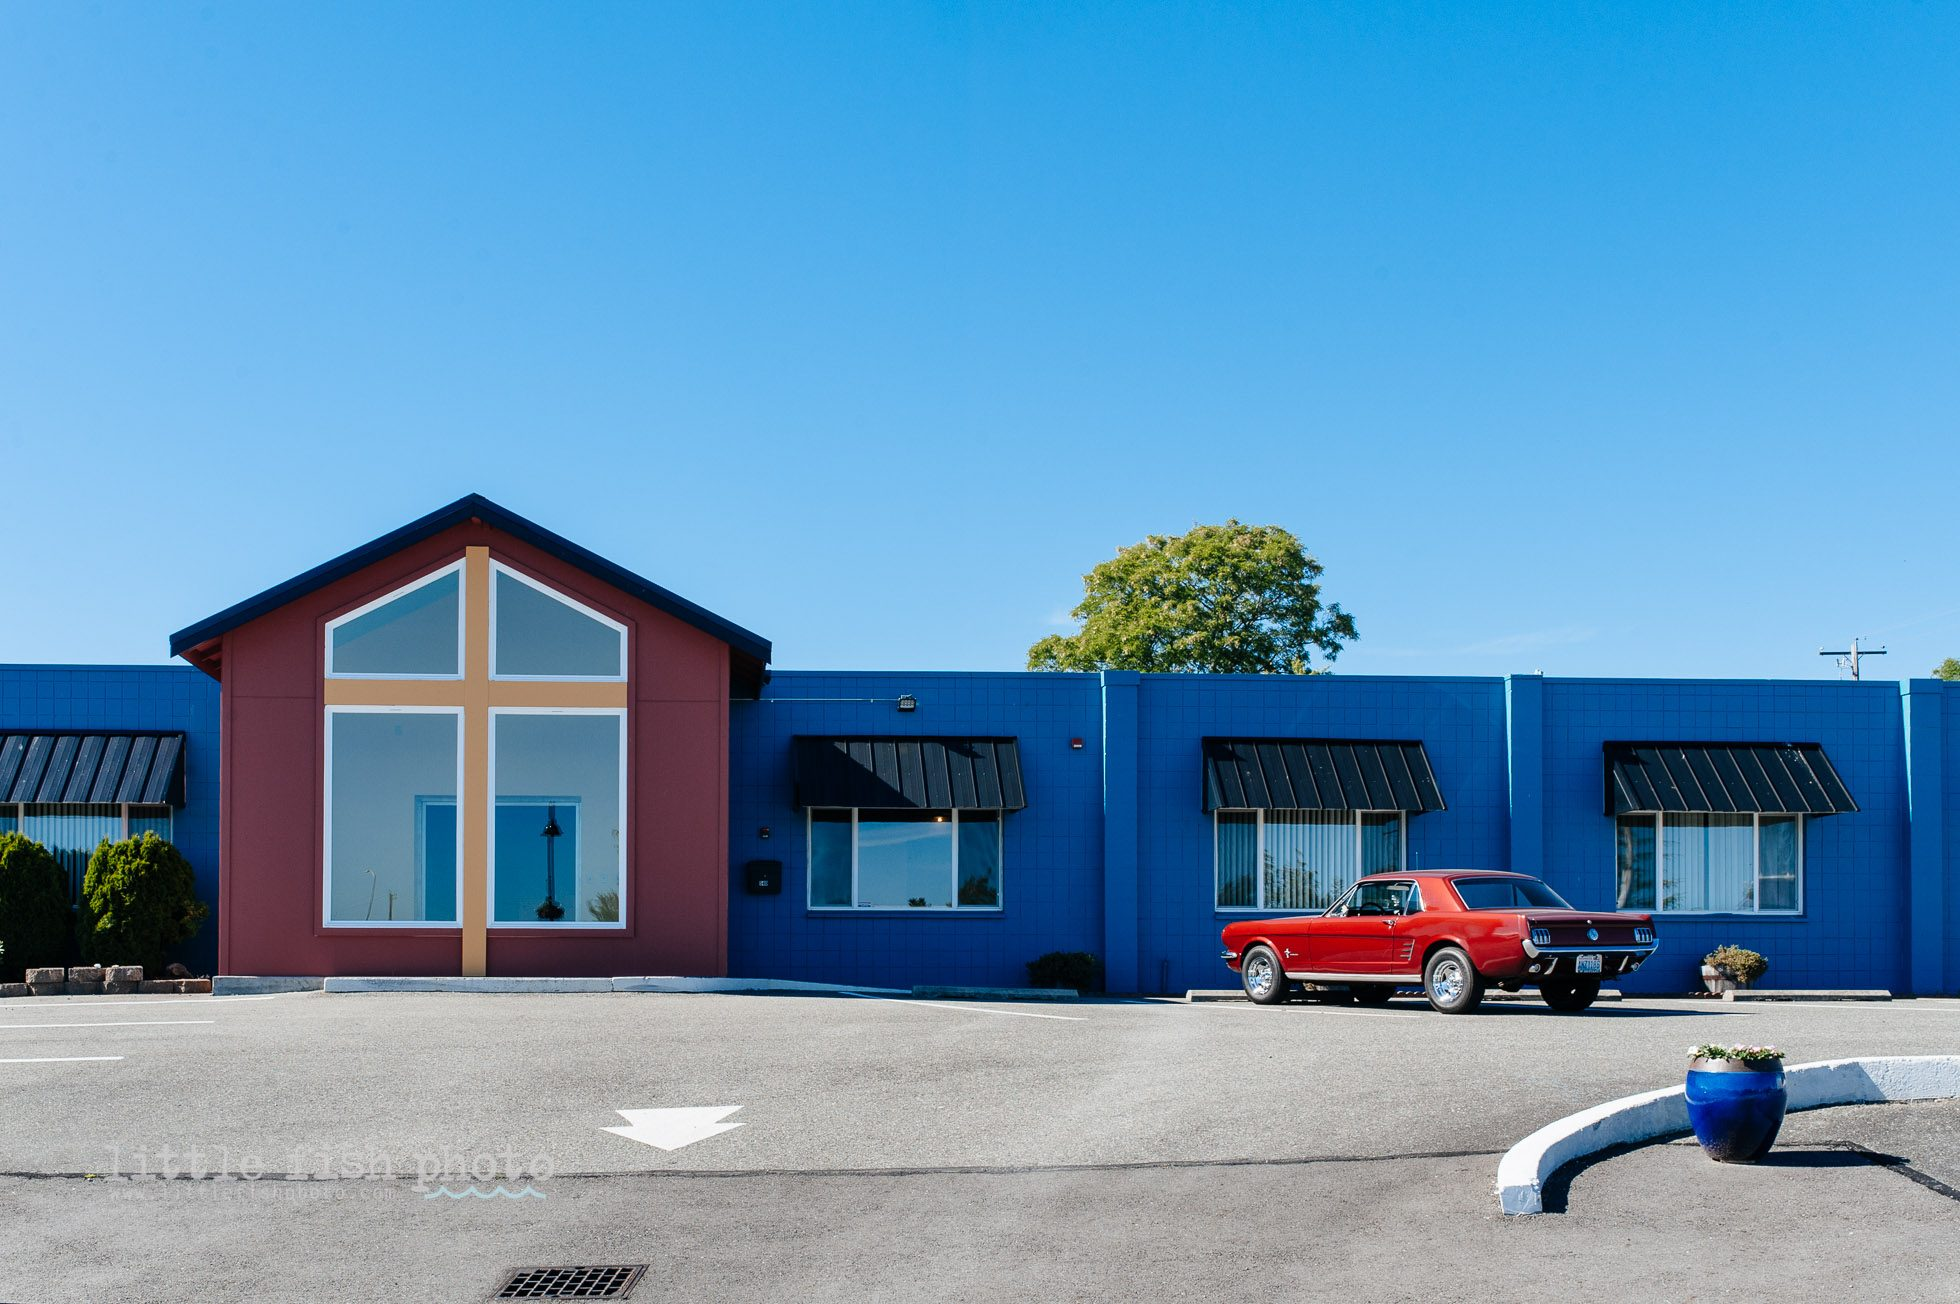 Lines and Colors of building exterior and classic car